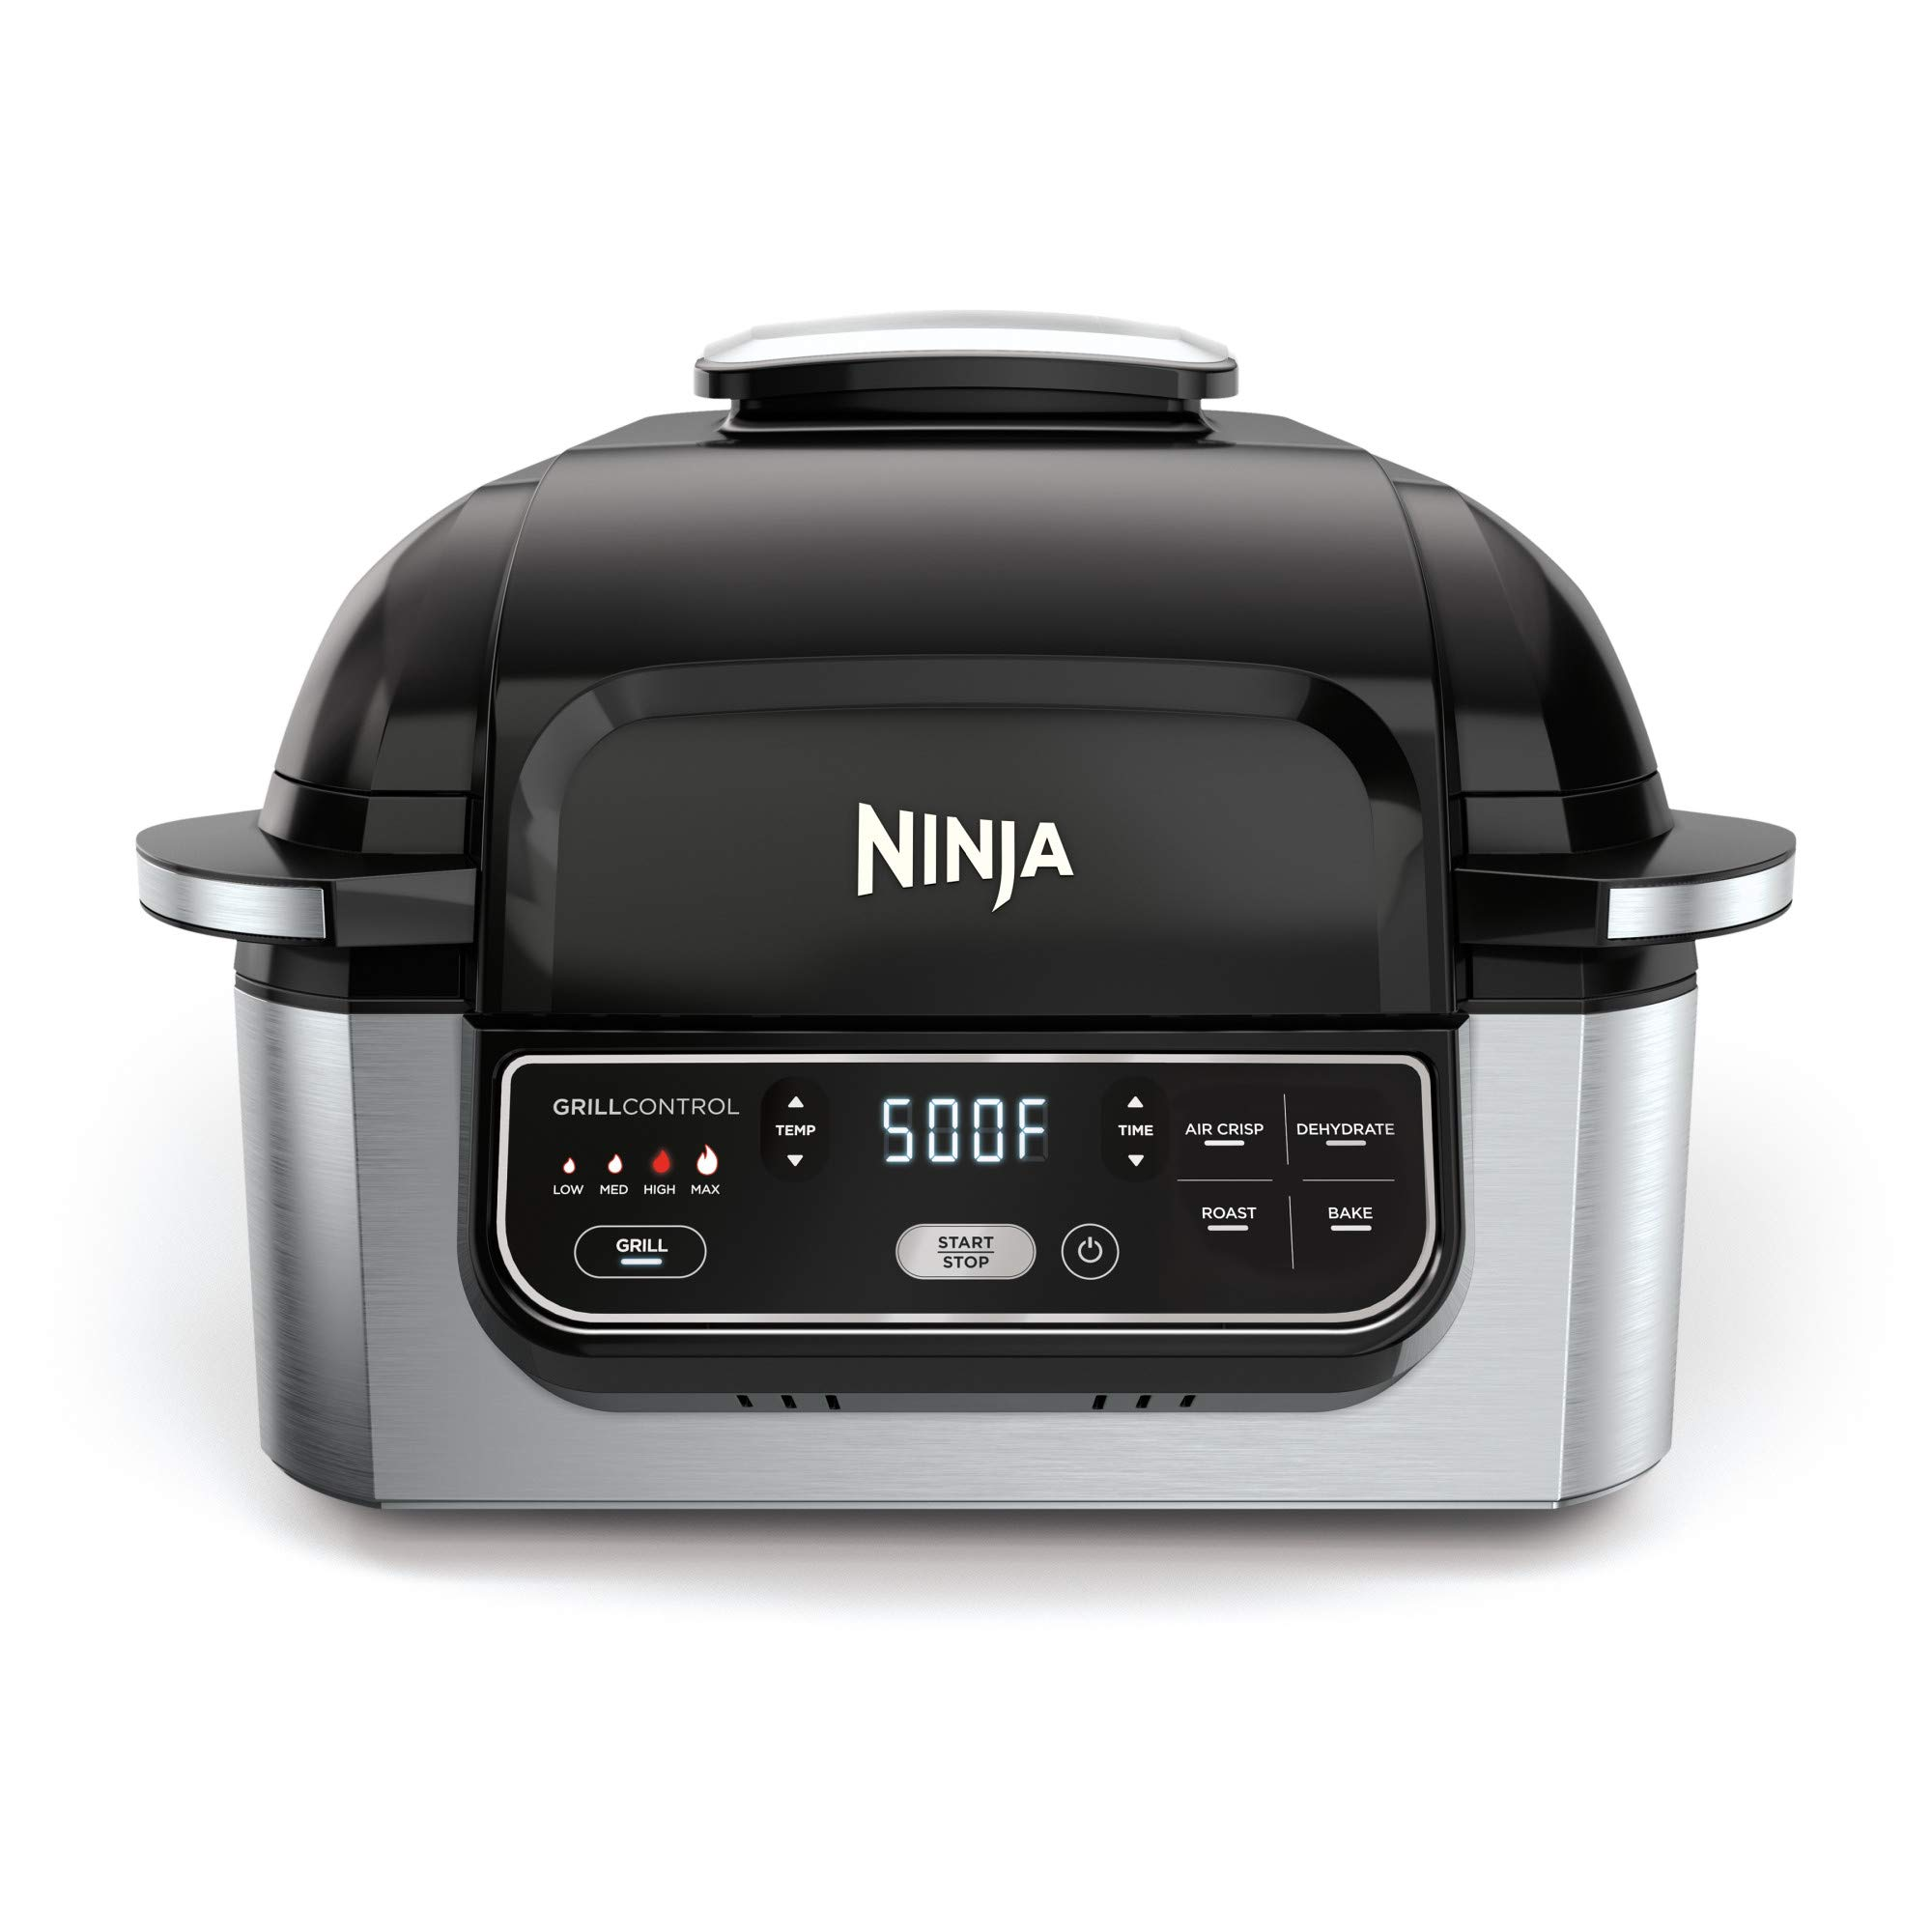 """Ninja Foodi 5-in-1 4-qt. Air Fryer, Roast, Bake, Dehydrate Indoor Electric Grill (AG301), 10"""" x 10"""", Black and Silver"""